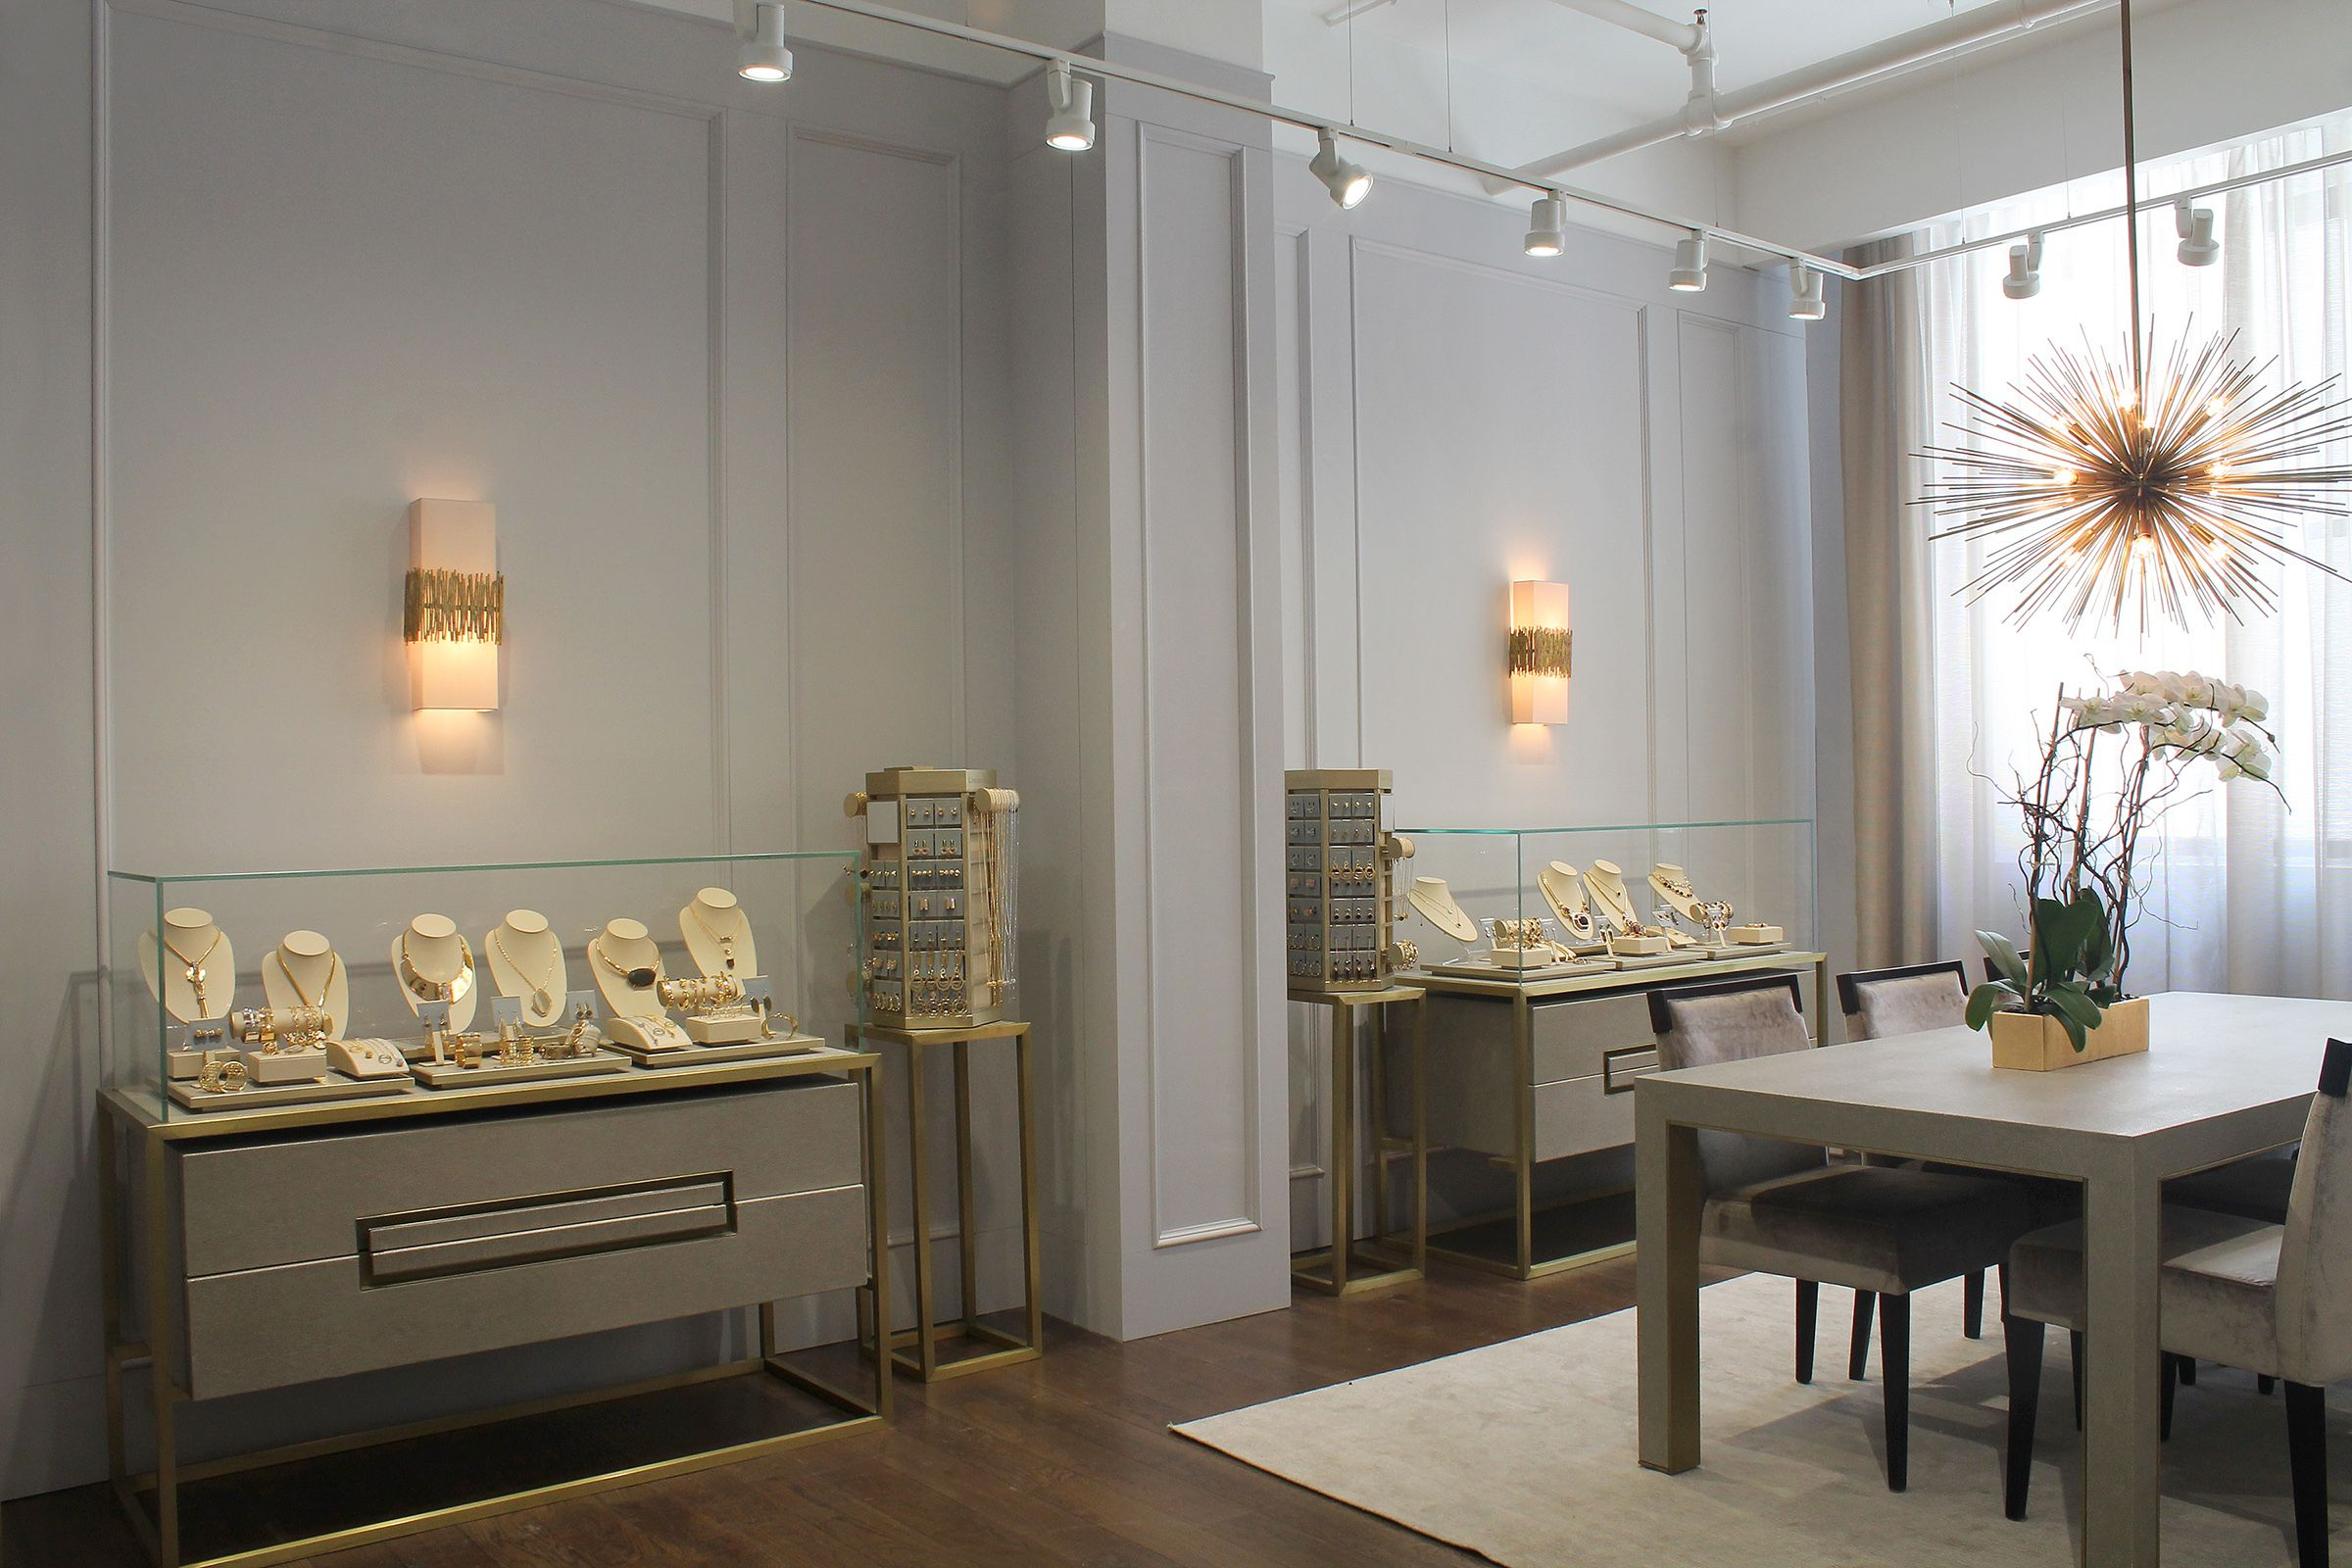 Showrooms showroom35 ny showroom pinterest showroom walls matchstick wall lights by porta romana in louise et cie mozeypictures Image collections